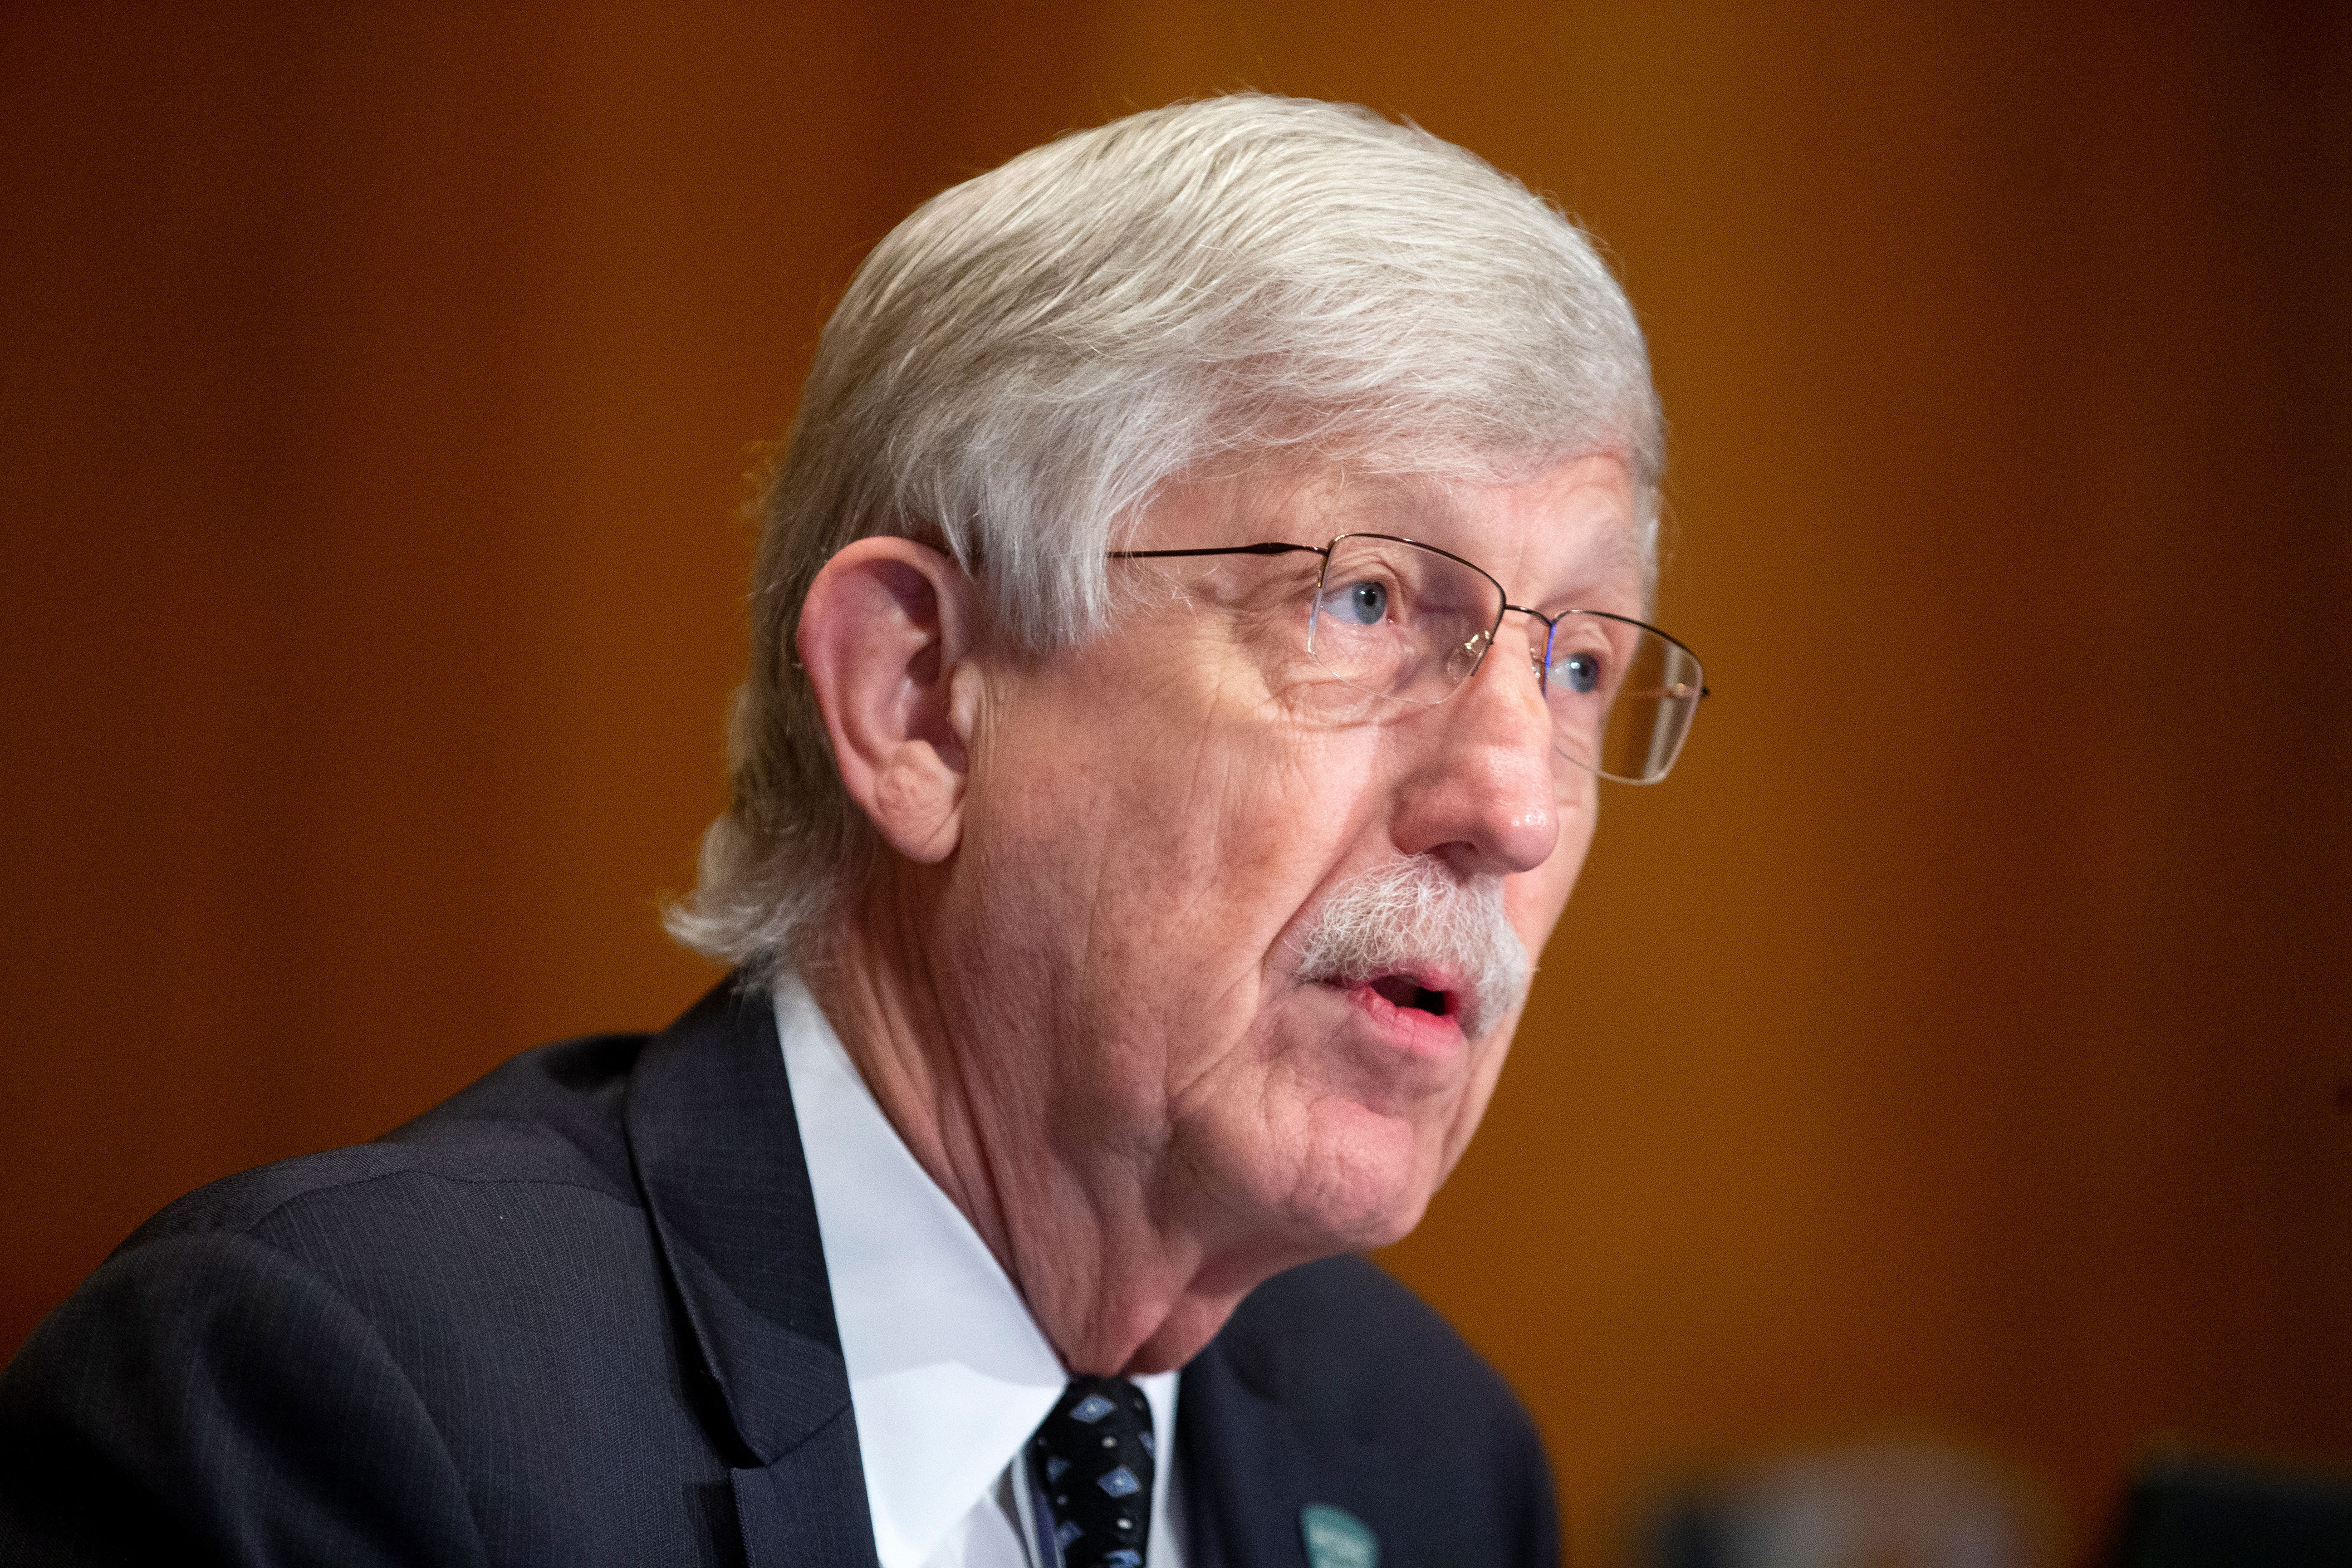 Dr. Francis Collins, director of the National Institutes of Health, listens during a hearing in Washington, DC, on September 9, 2020.